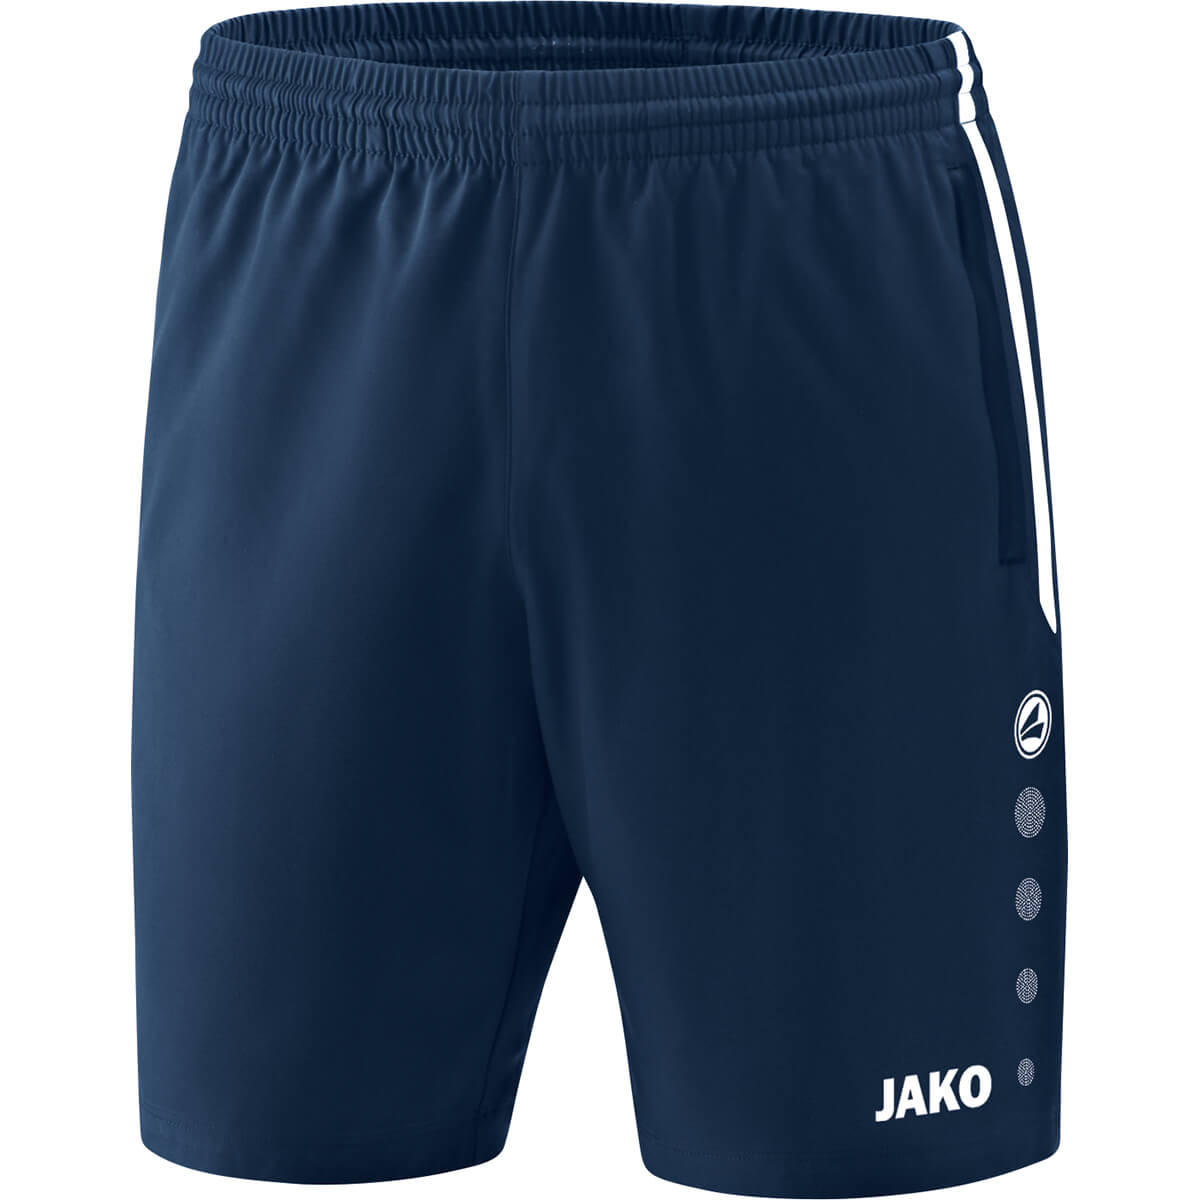 Short Competition 2.0 - Frauen | Jako 6218